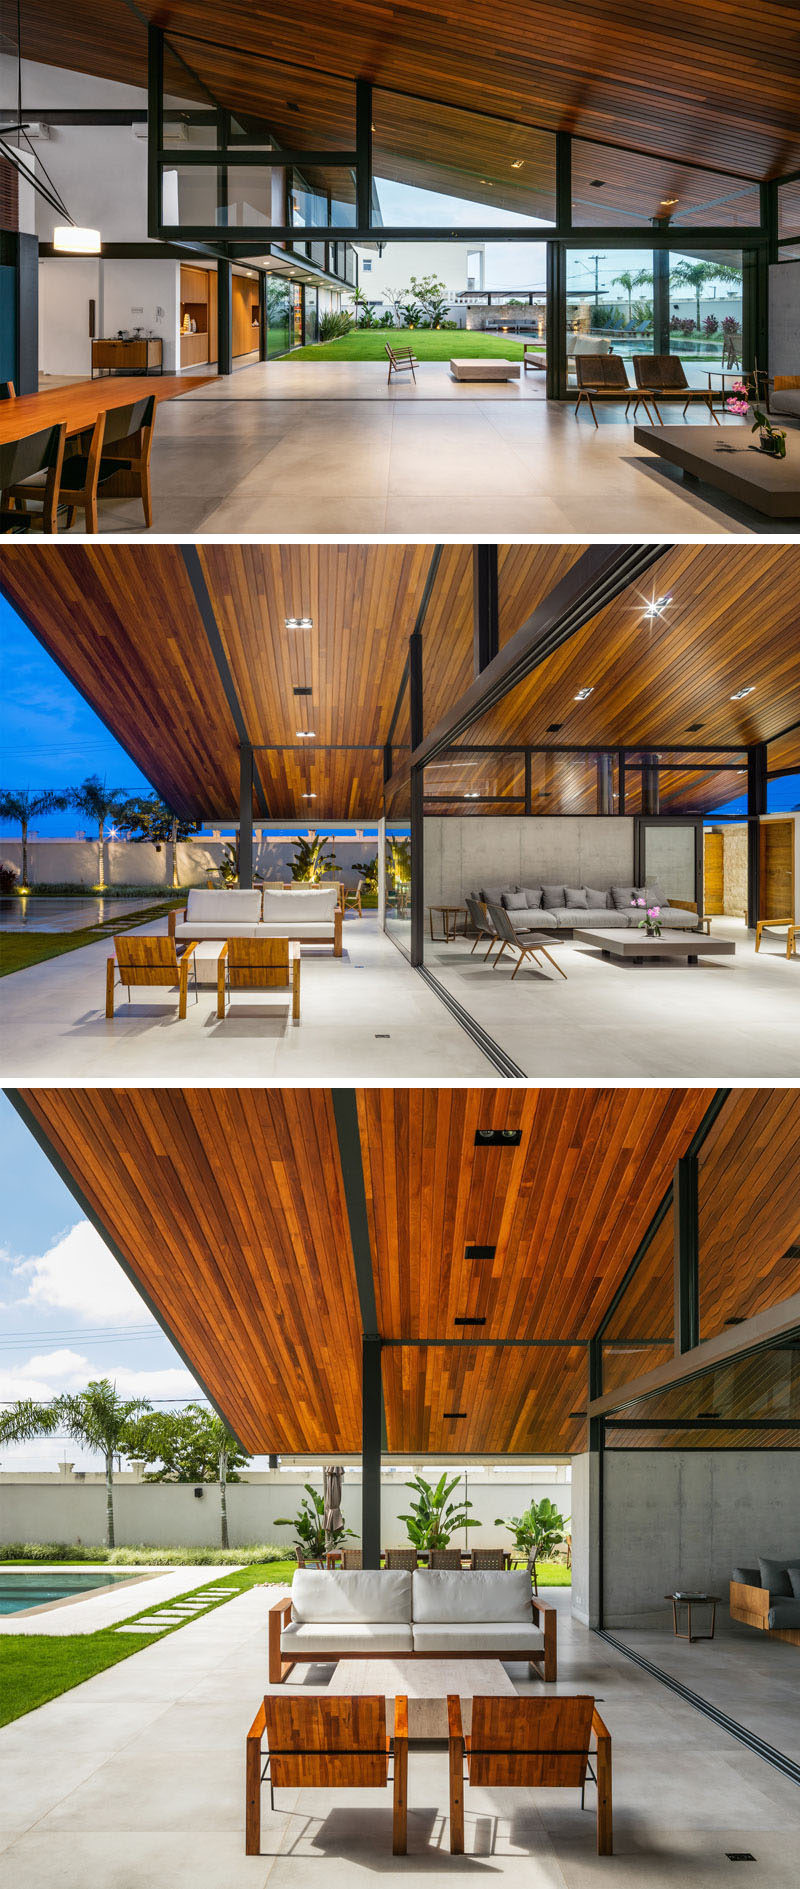 The living area in this modern house opens up to the covered outdoor lounge and alfresco dining space. The sloped ceiling runs from the interior of the home to the exterior, with angled windows following the line. #ModernHouse #IndoorOutdoorLiving #SlopedWoodCeiling